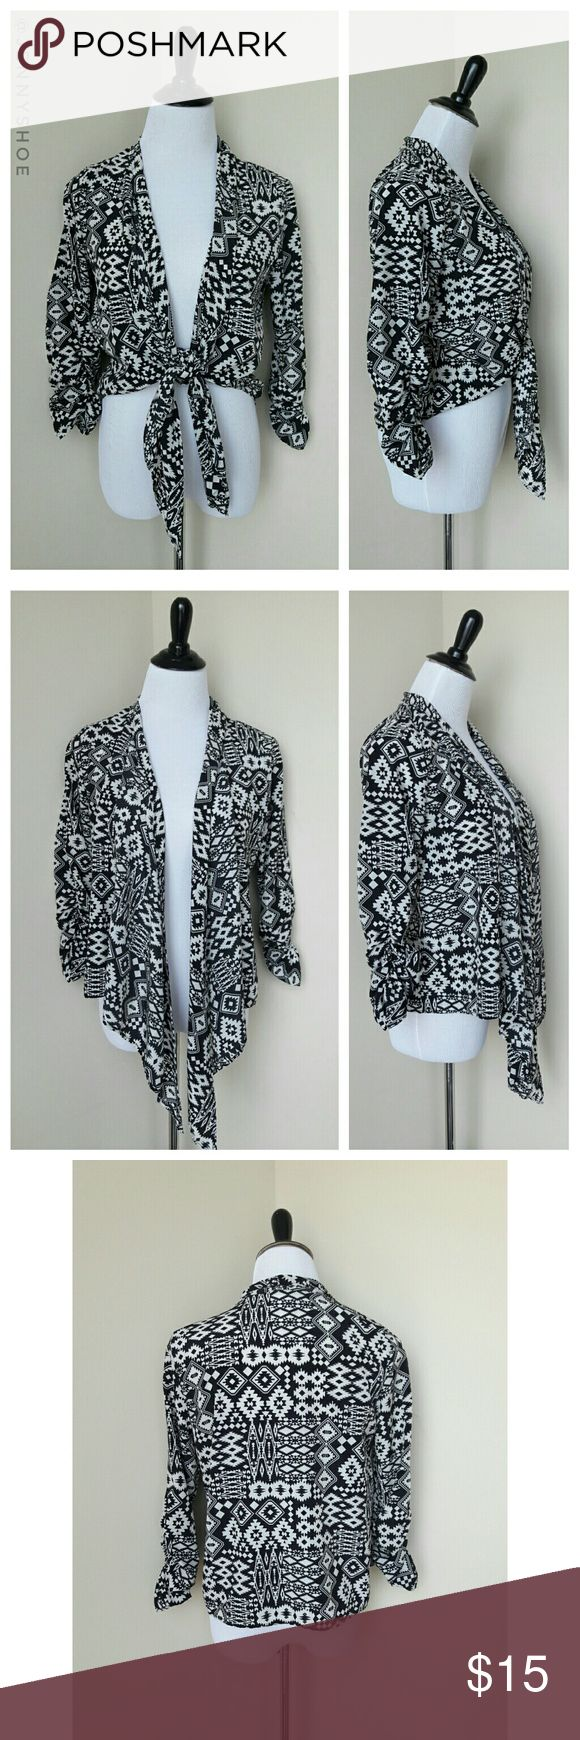 "{derek heart} aztec tie front cardigan A feminine and unique aztec printed thin open cardigan that you can tie in front for a cute look. Has ruched sleeves.  Pair with a tank top and jeggings and sneakers for a girly and chic look, or pair with a skater skirt and wear leather sandals for a fun a flirty look.  From Derek Heart.  Gently worn. Size medium.  Modeled on my mannequin:  measurements are 35"" chest 26"" waist and 34"" hips Derek Heart Tops"